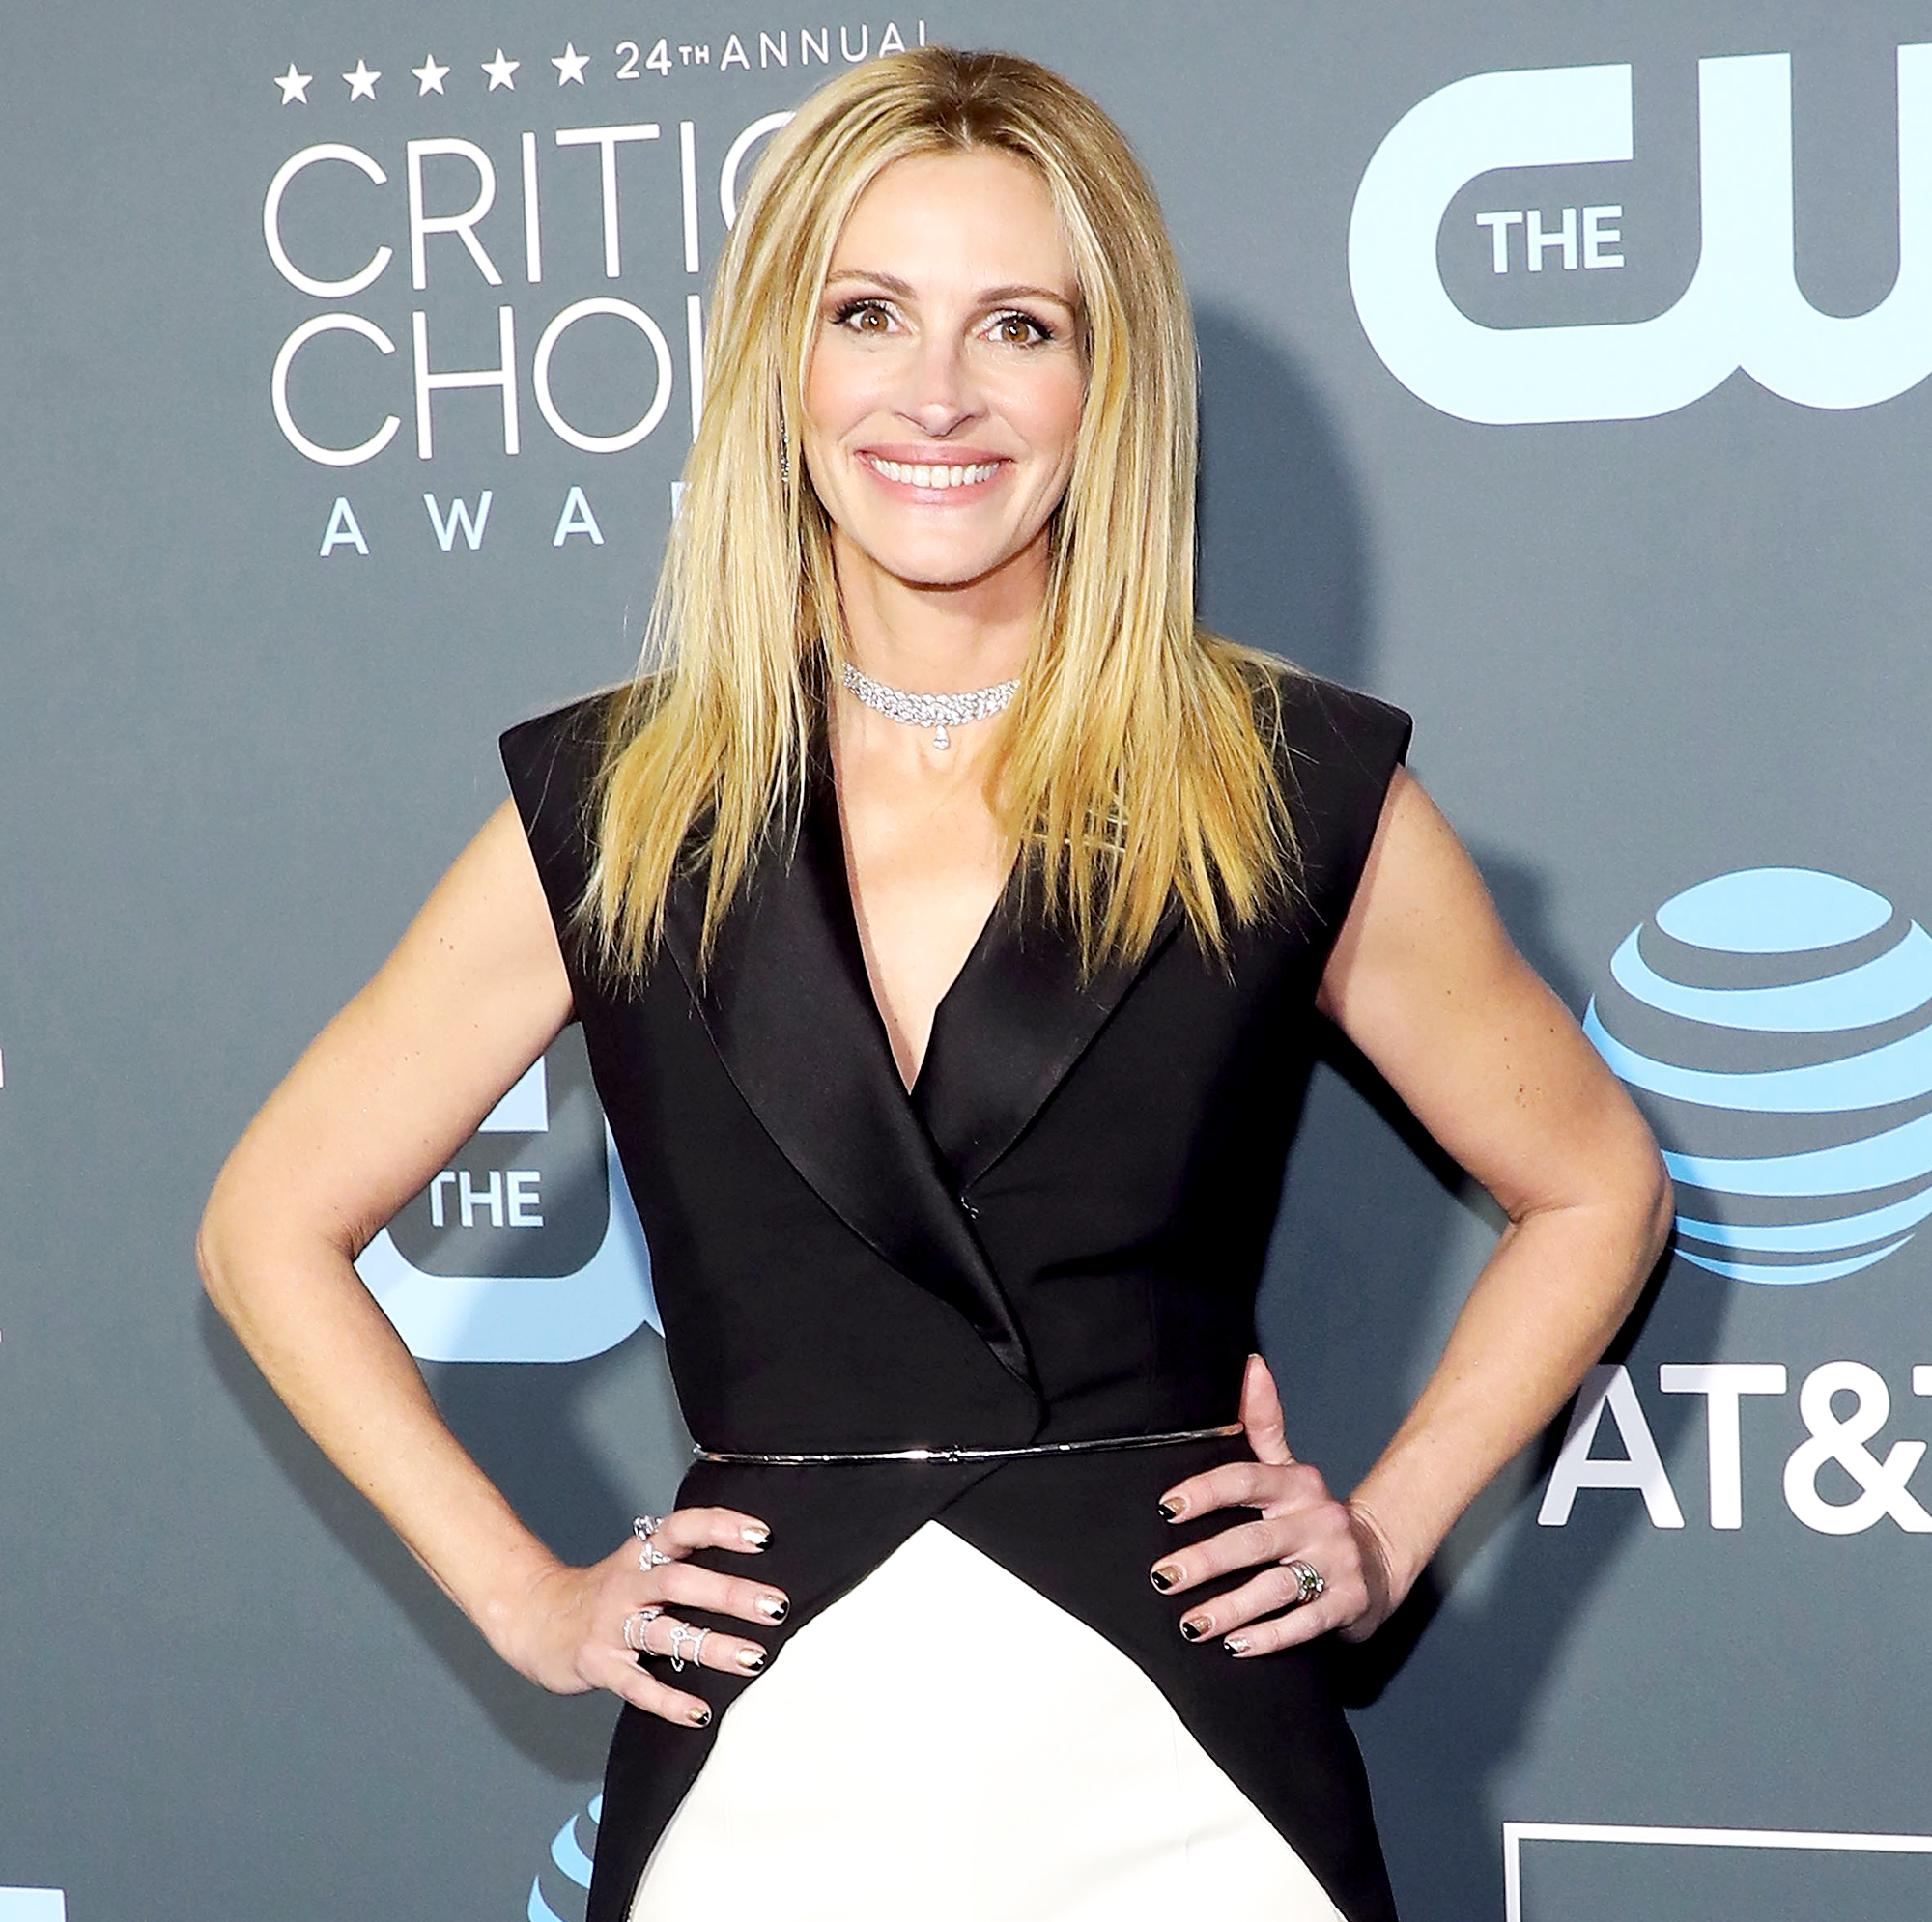 julia-roberts-college-admission-scam - Julia Roberts attends The 24th Annual Critics' Choice Awards at Barker Hangar on January 13, 2019 in Santa Monica, California.